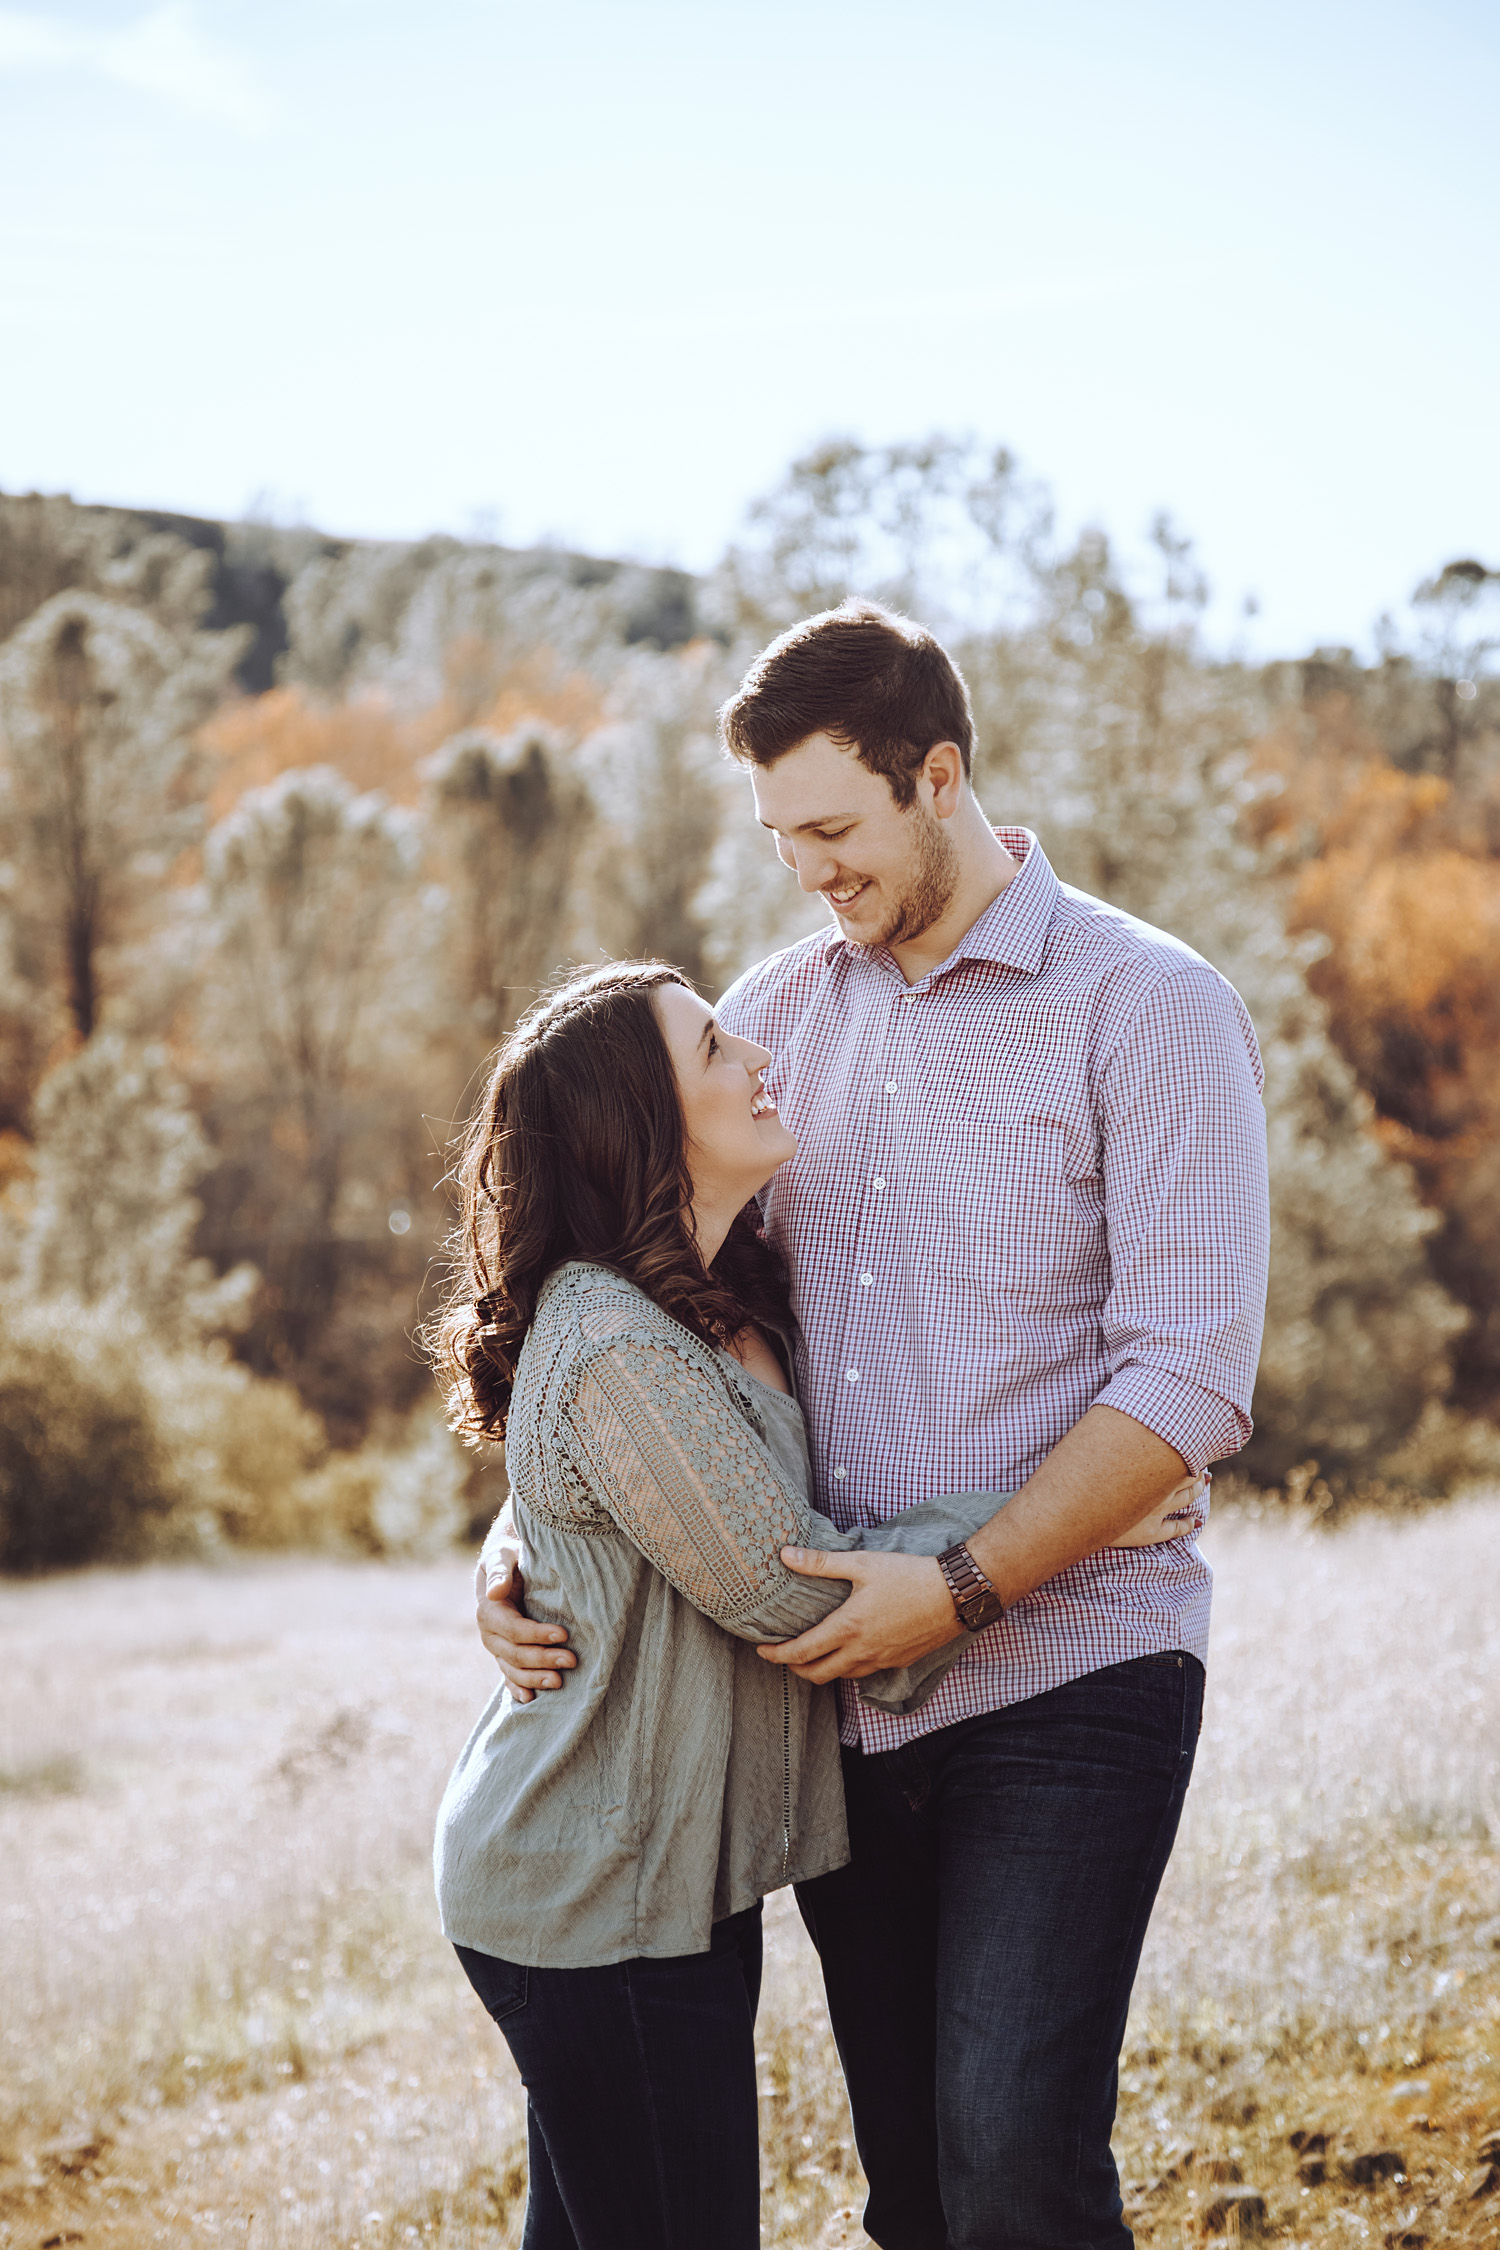 Engagement-photography-Upper-Park-Chico-CA-00-2.jpg